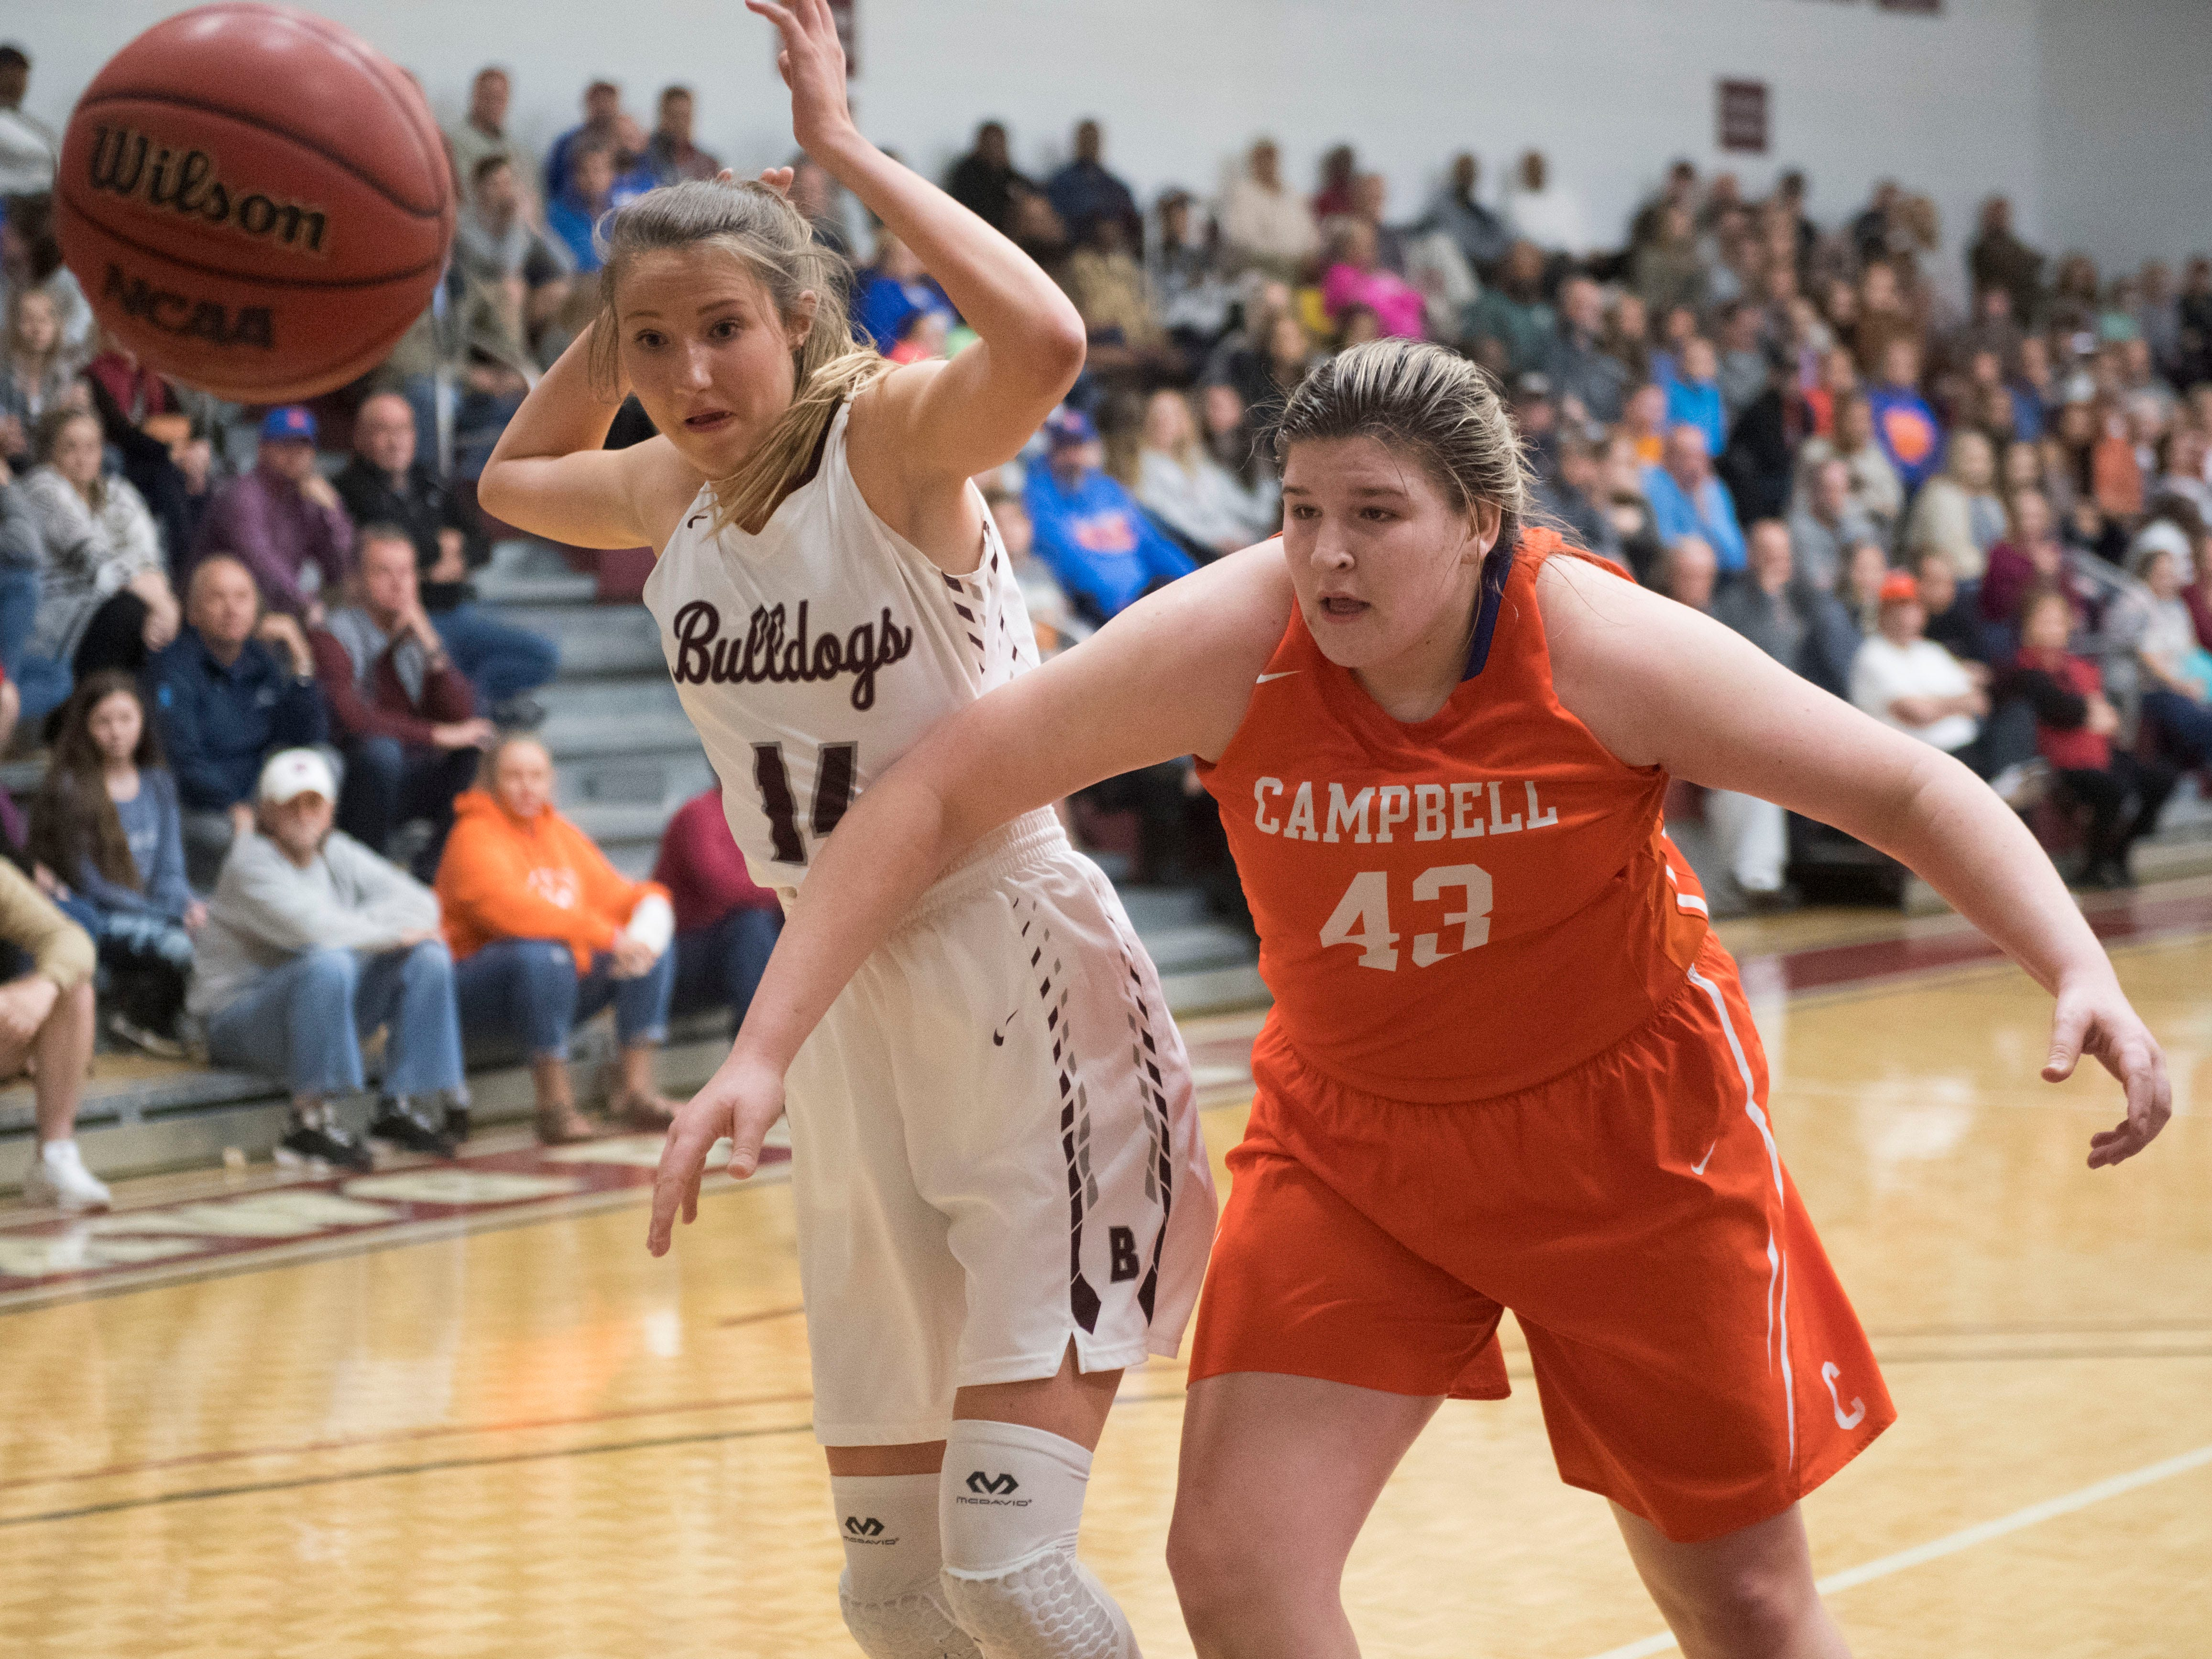 Bearden's Annaka Hall and Campbell County's Madison Brady watch the ball go out of bounds in the Region 2-AAA girls basketball semifinals on Monday, February 26, 2018.